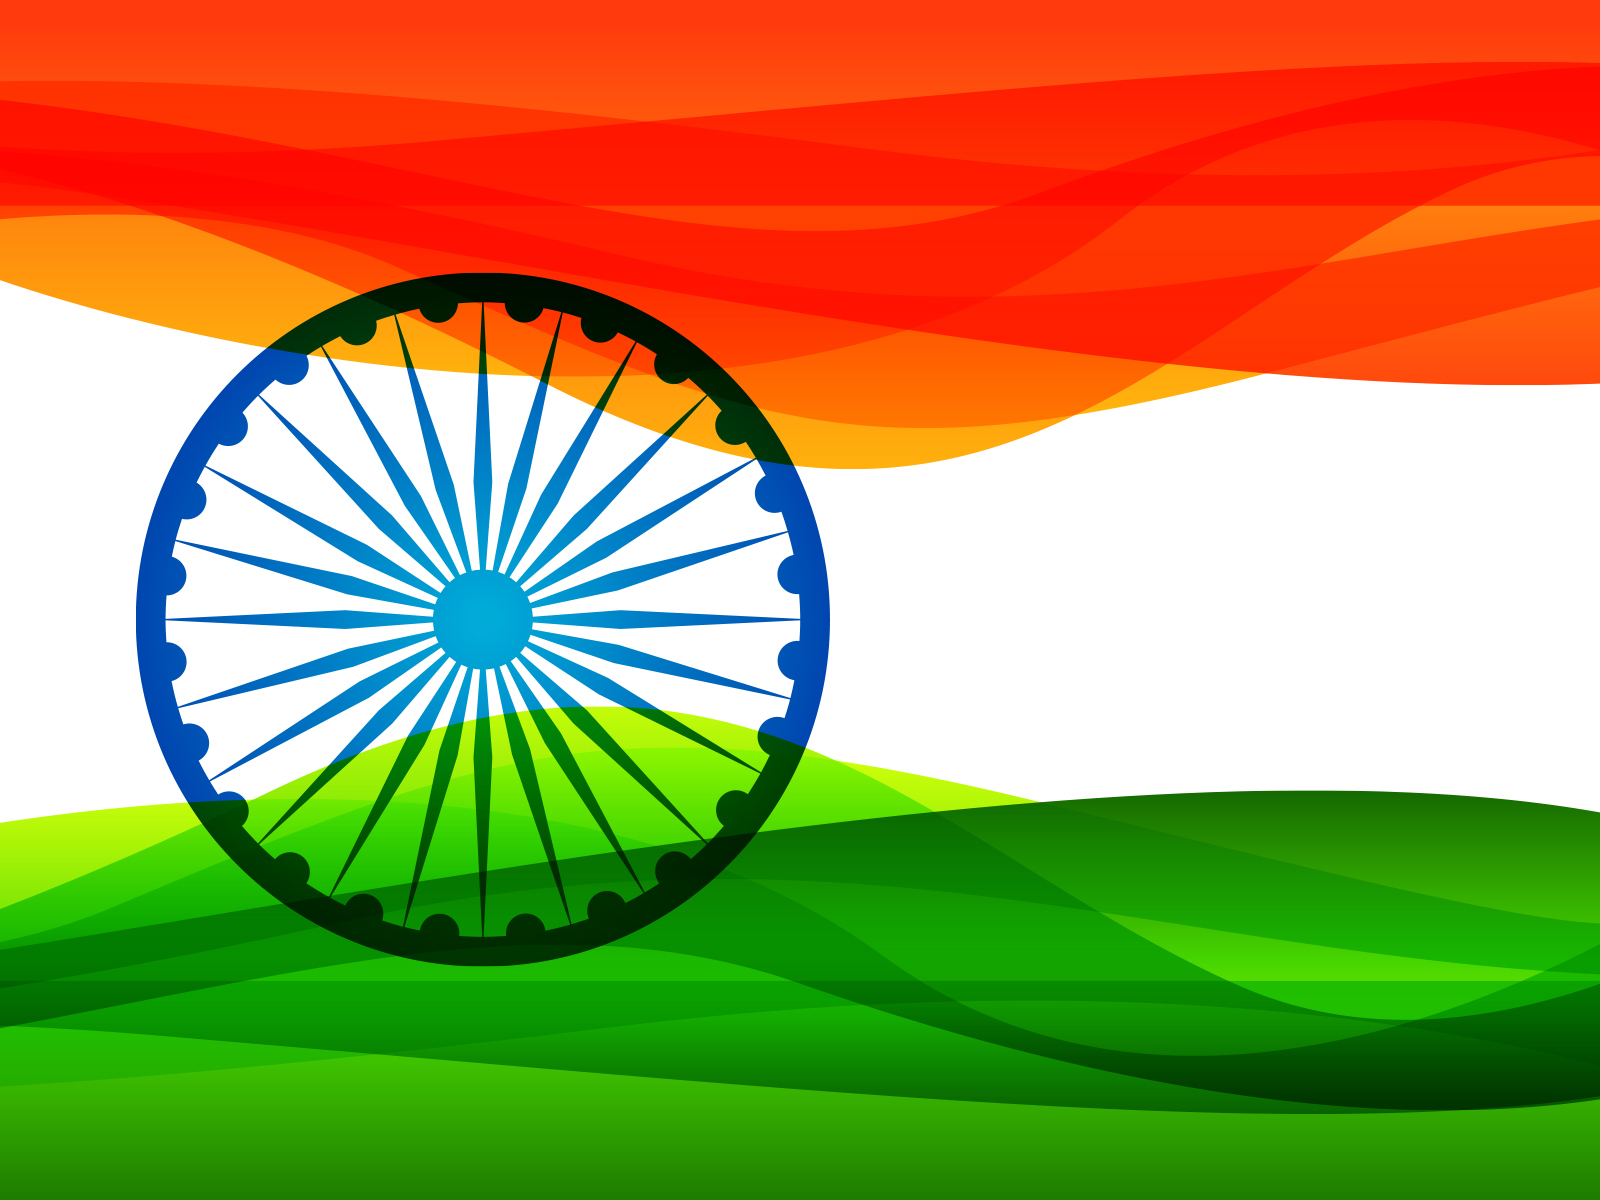 Flag Of India Backgrounds Blue Flag Green Orange